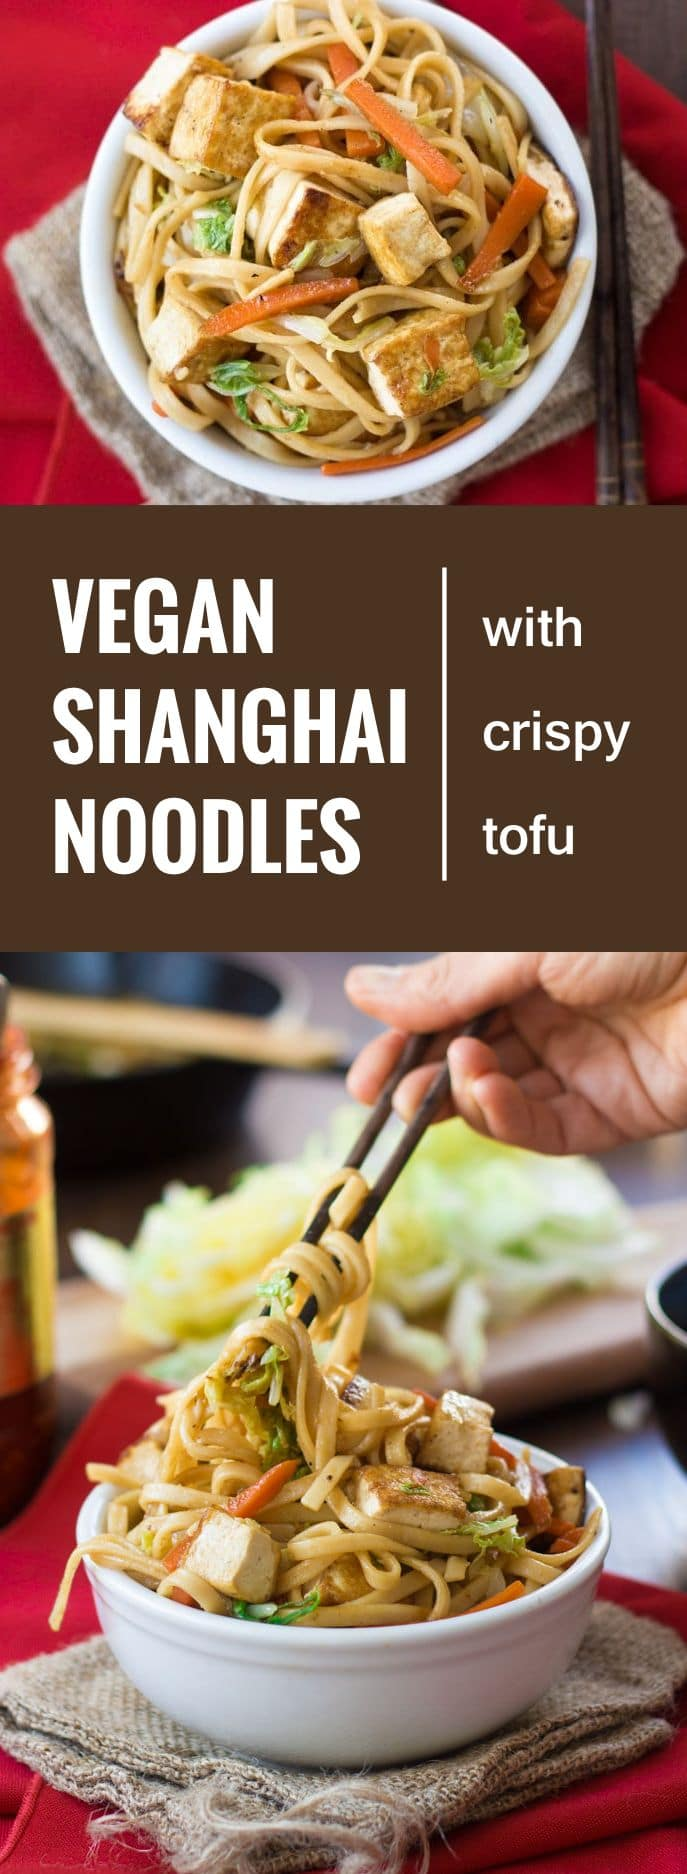 vegan-shanghai-noodles-long